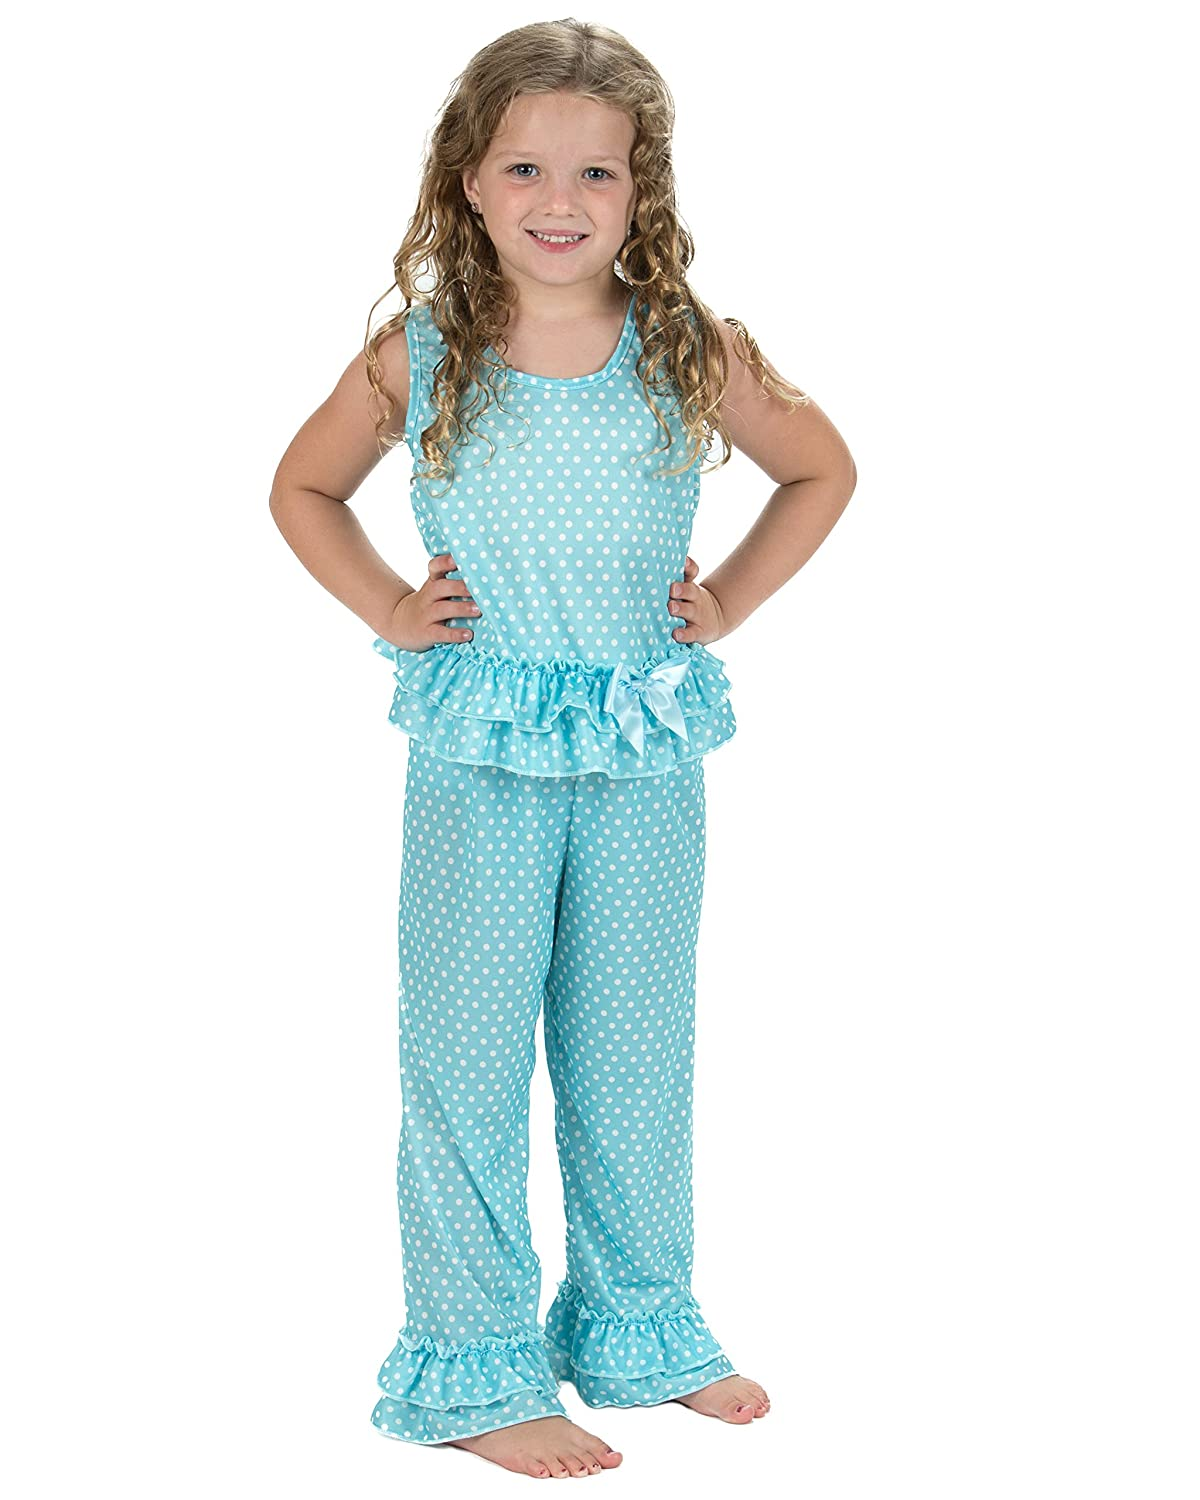 Laura Dare Little Girls All The Rage Blue Sleeveless Pajamas